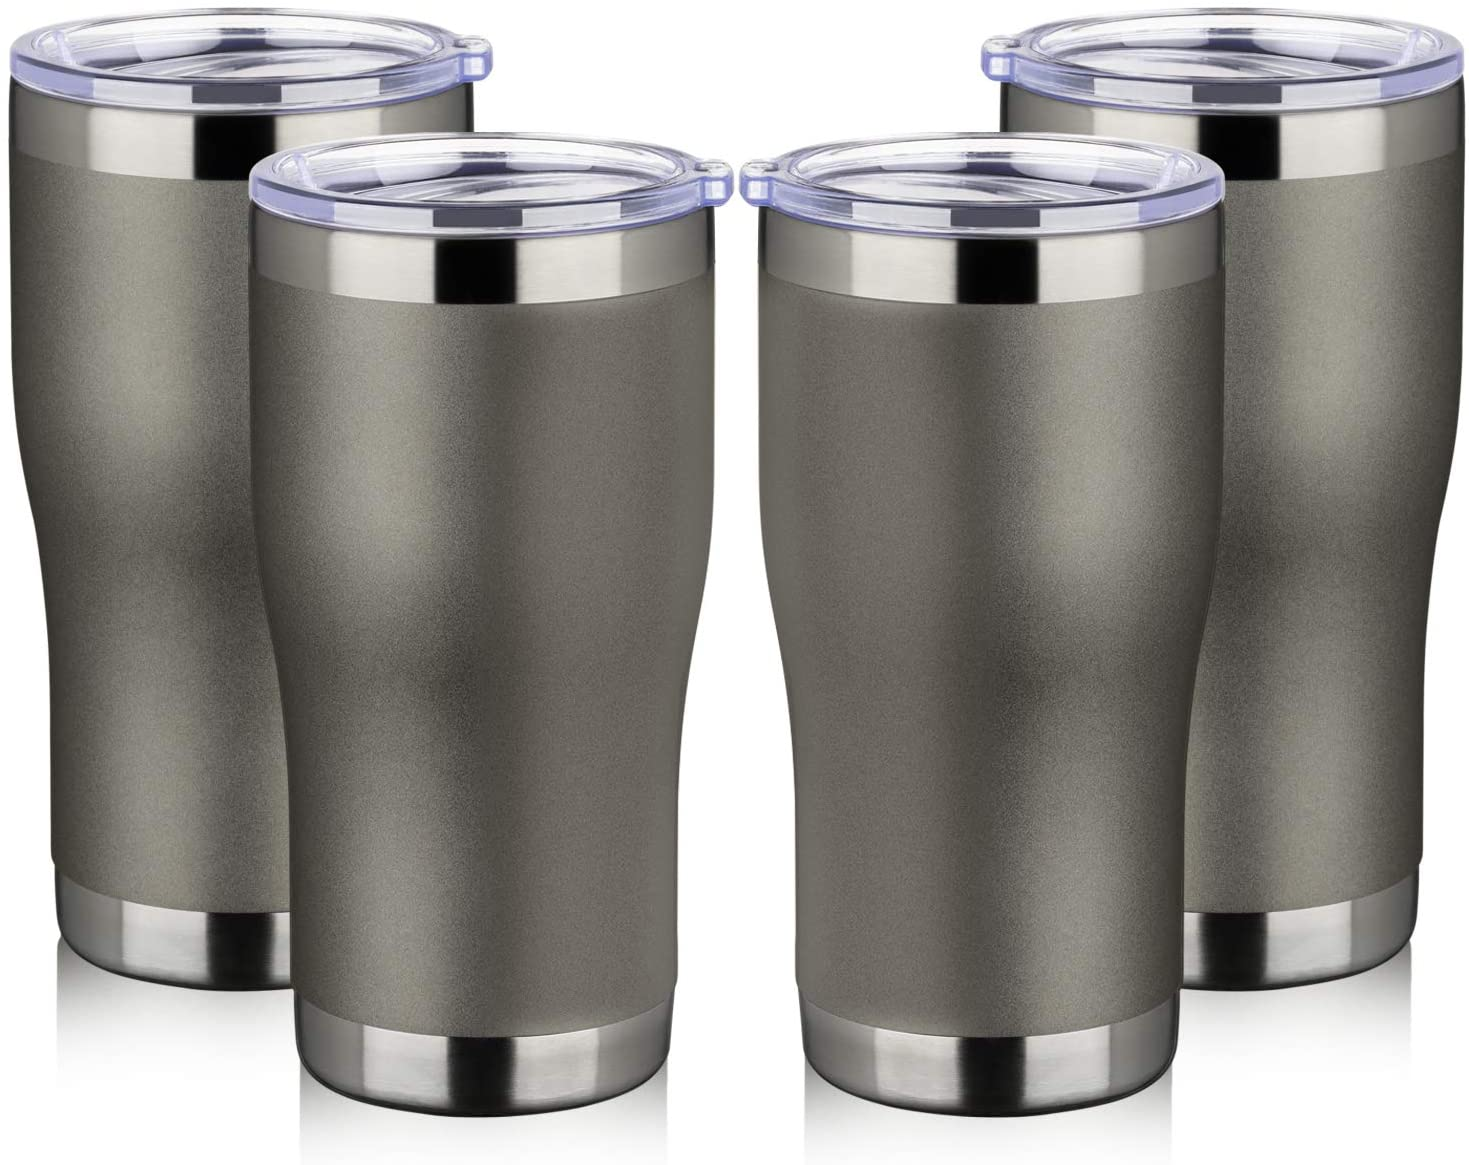 MEWAY 20 oz Stainless Steel Tumbler with Lid, 4 Pack Vacuum Insulated Coffee Cup Tumblers Bulk,Double Wall Powder Coated Travel Mug,Keep Drinks Cold & Hot Thermal Cups (Cold Gray, set of 4)